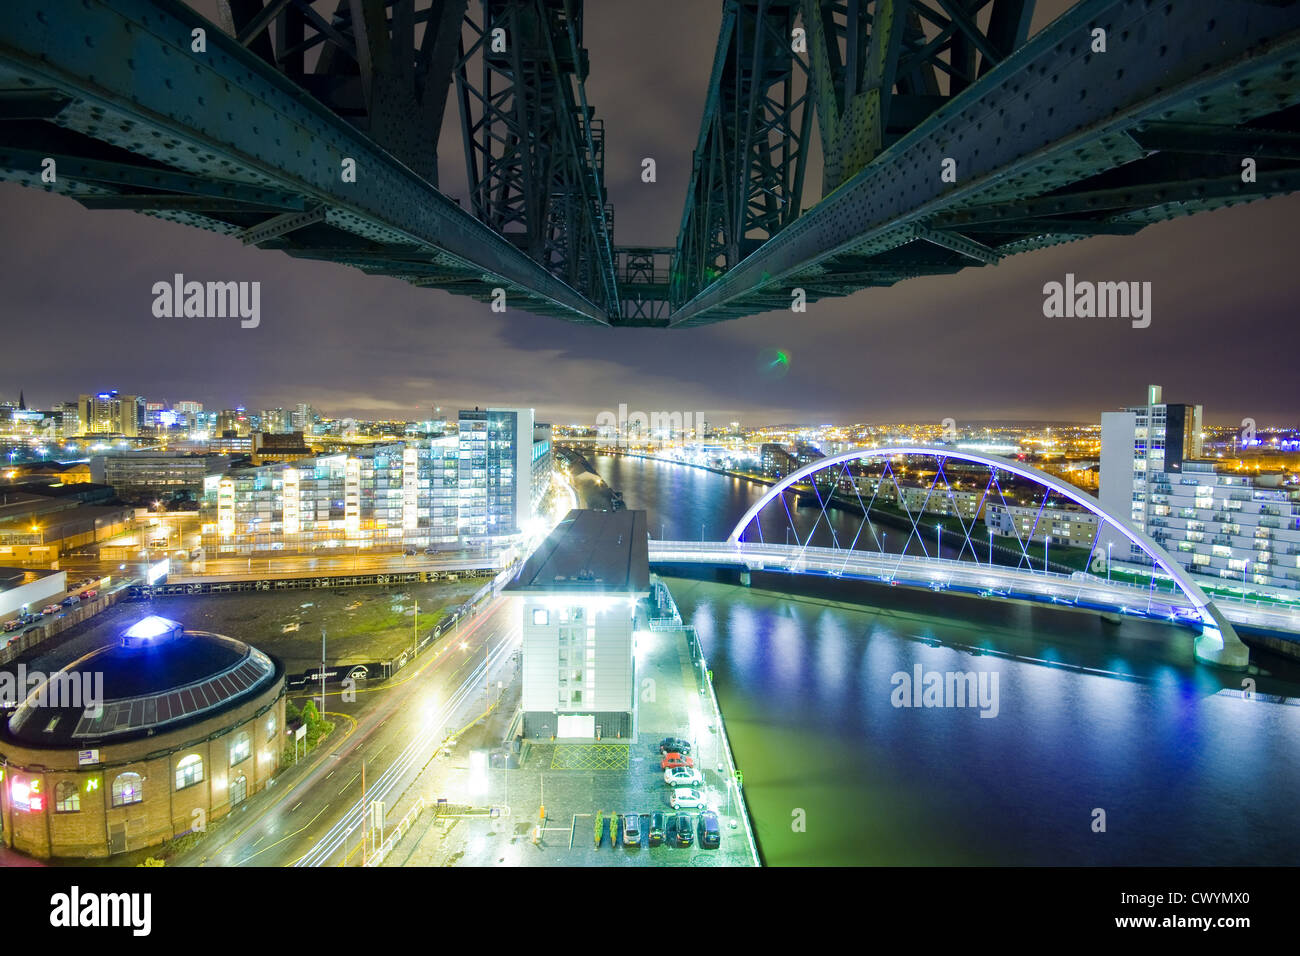 The view from the Finnieston Crane in Glasgow - Stock Image